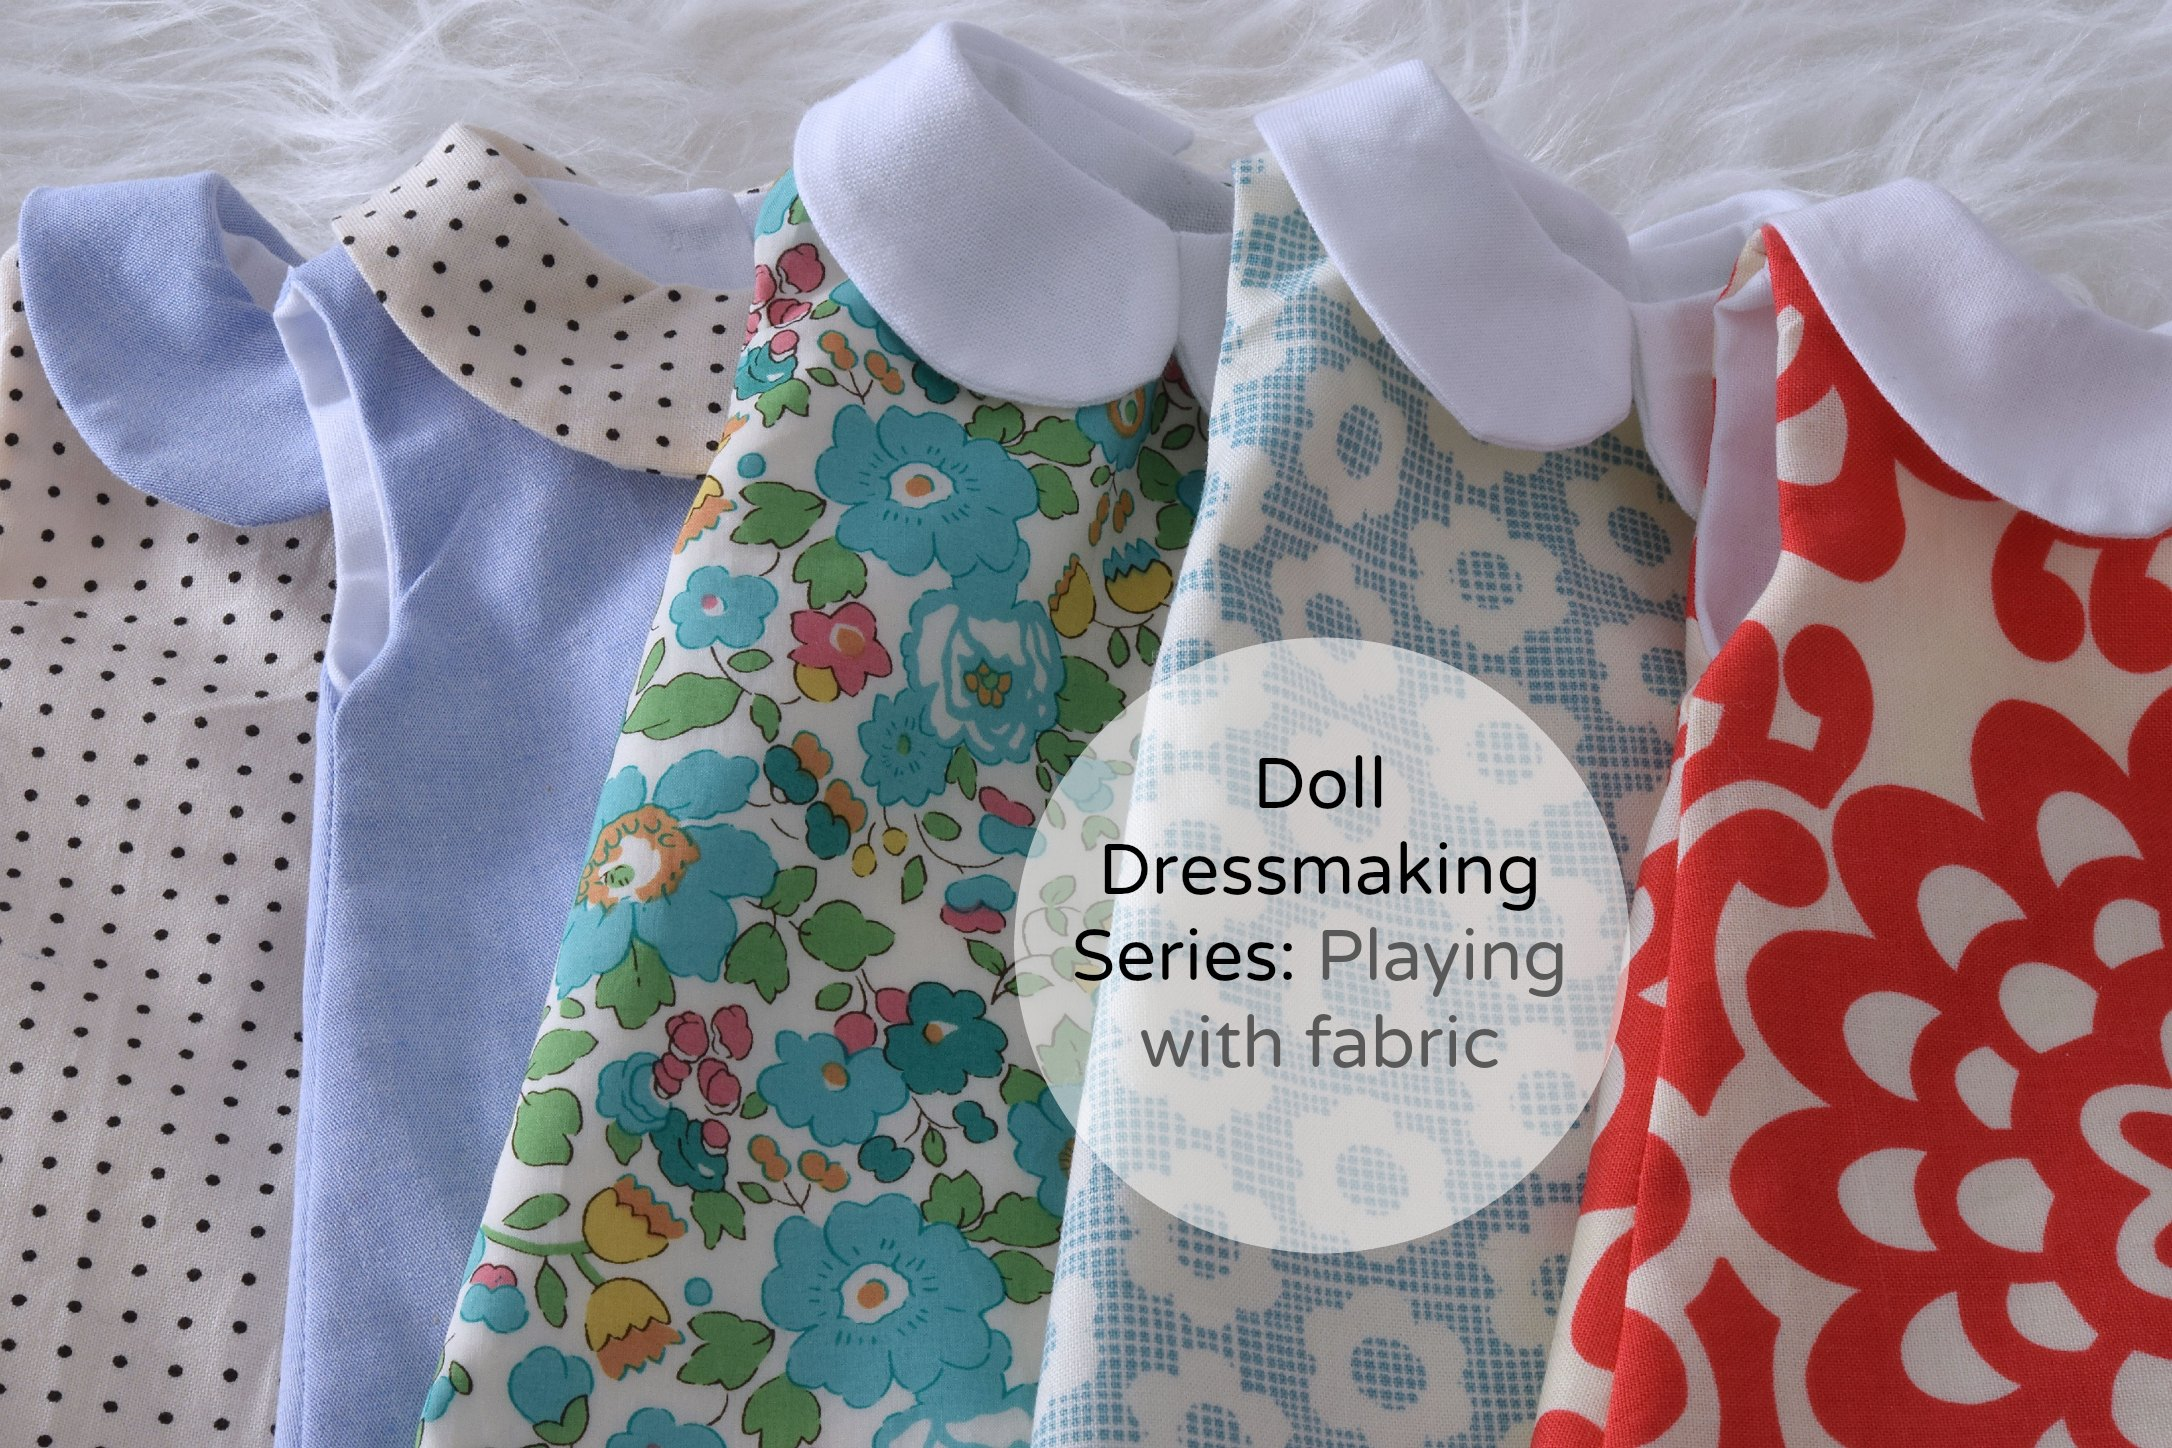 Doll Dressmaking playing with fabric